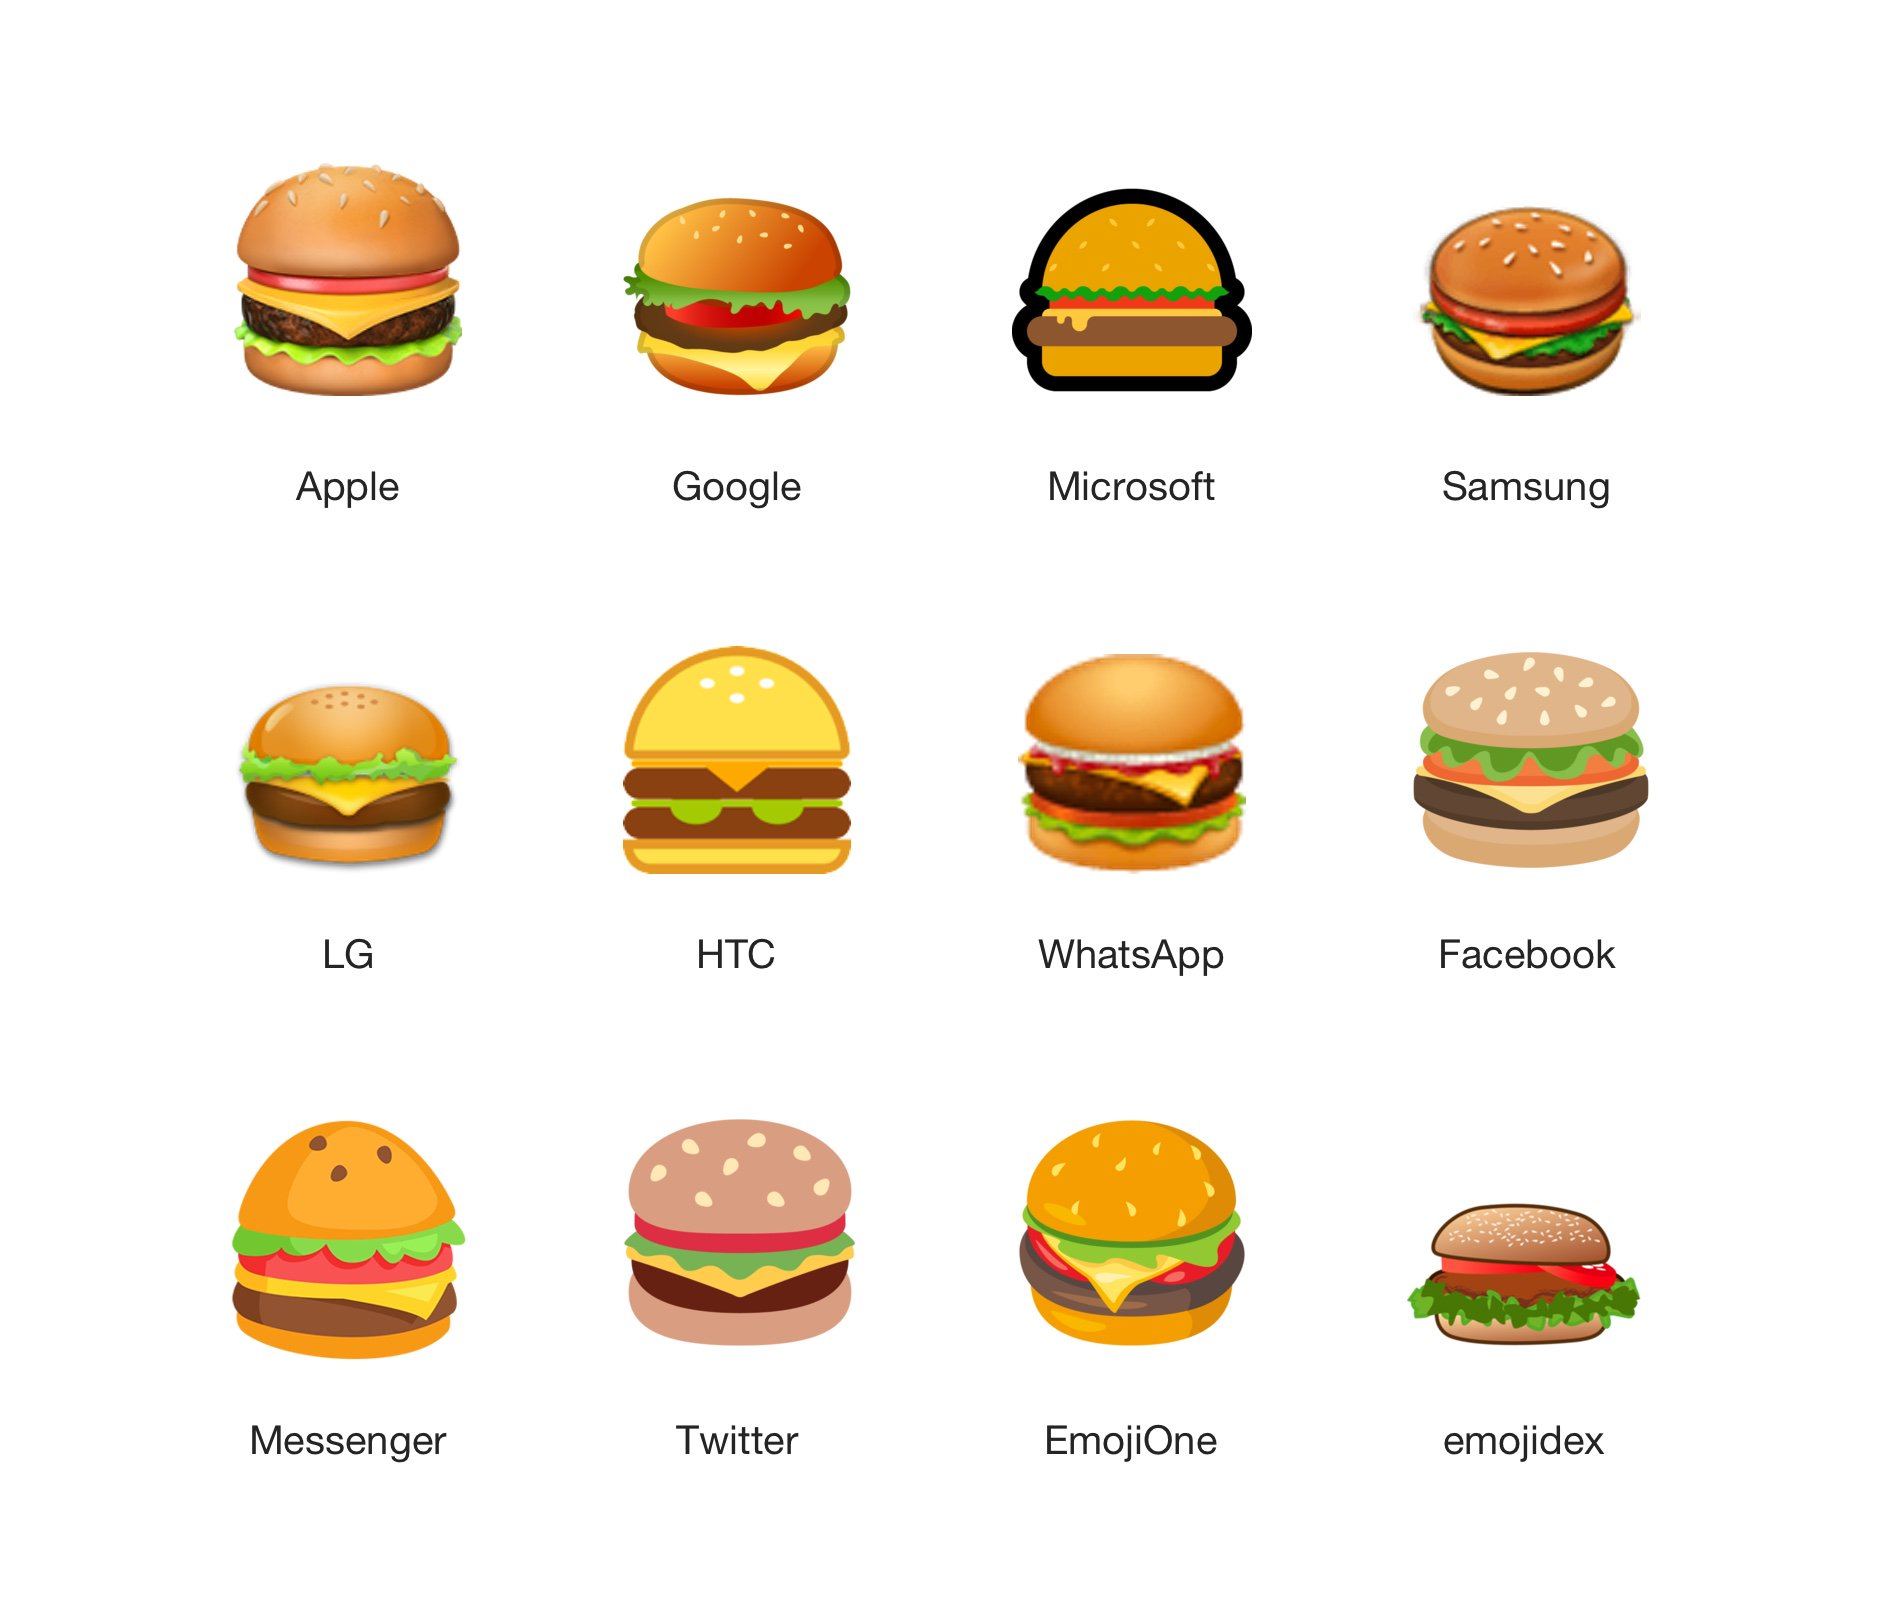 burger-emoji-platform-comparison-emojipedia